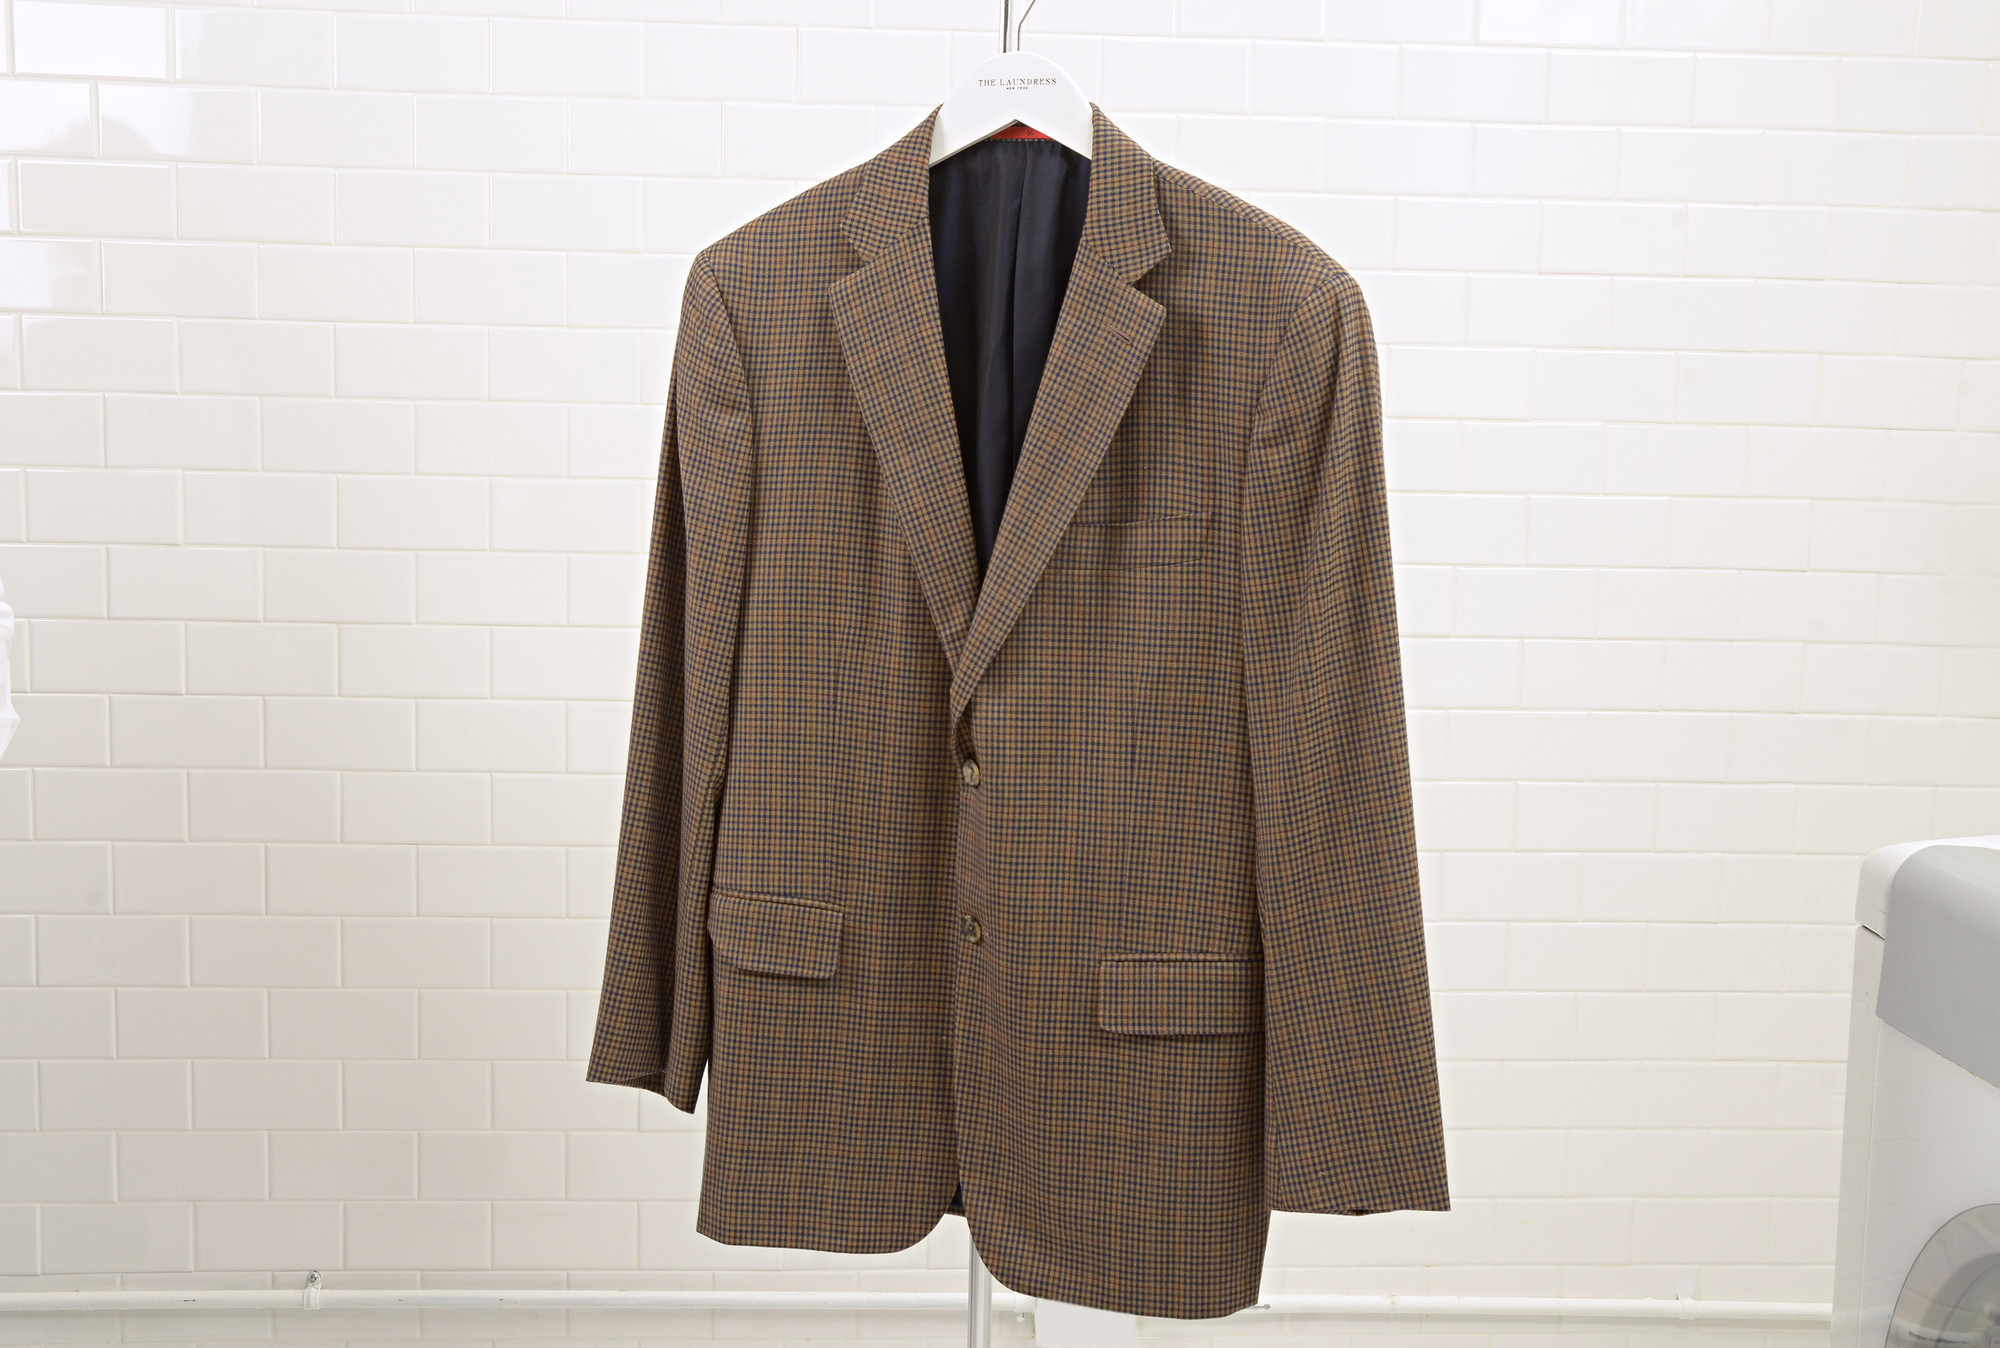 CMSPage_How to Clean a Blazer_IMAGE_01